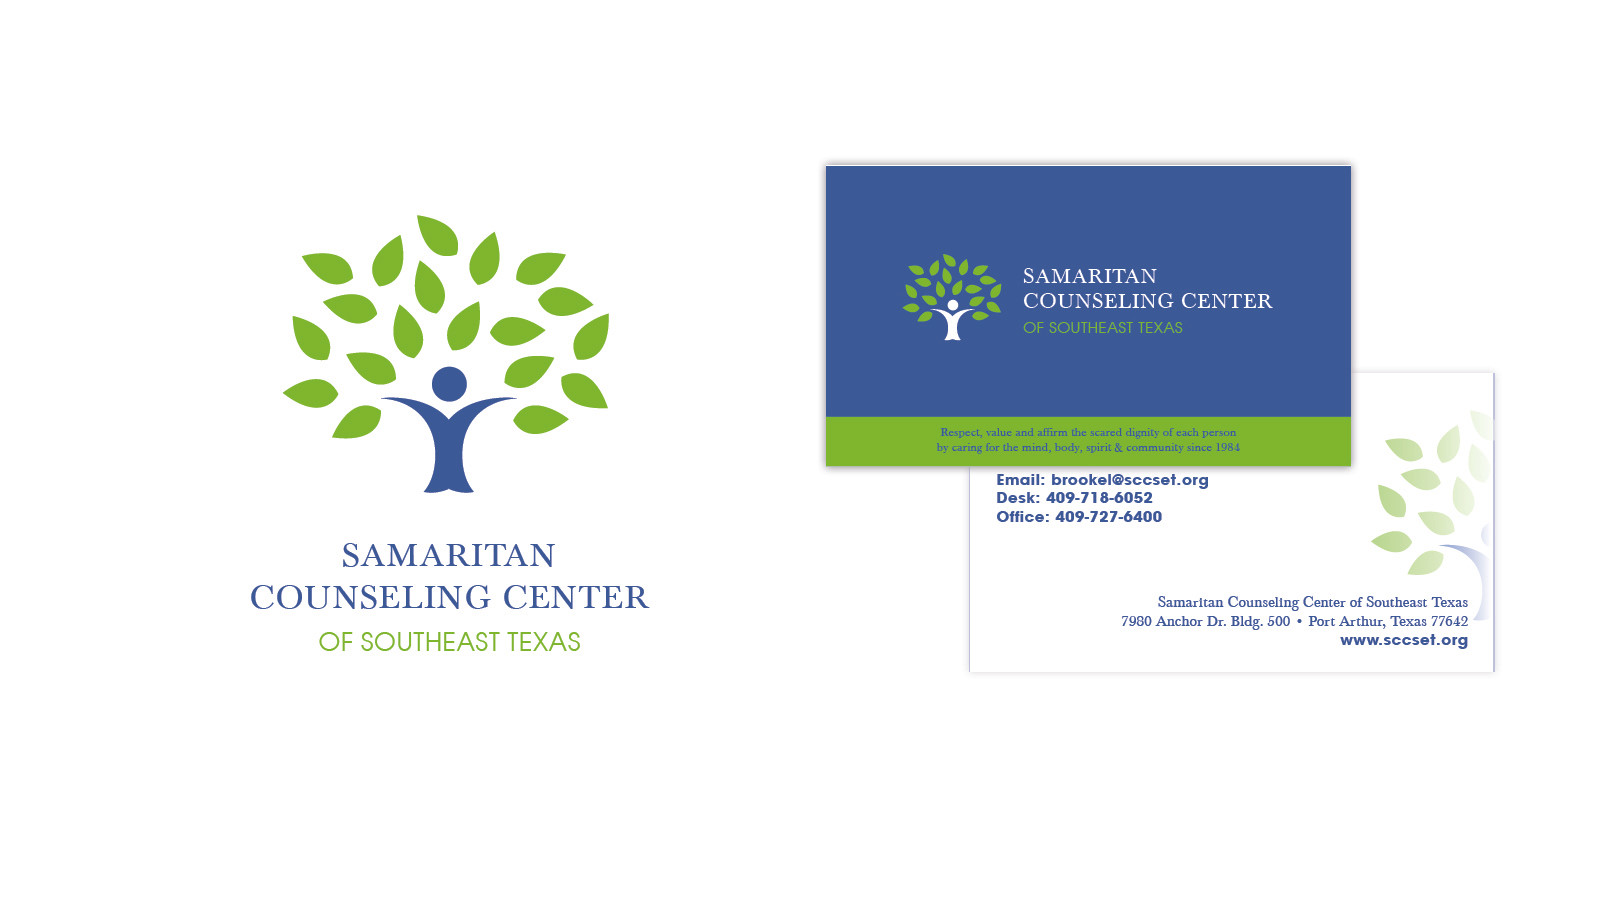 Samaritan Counseling Center